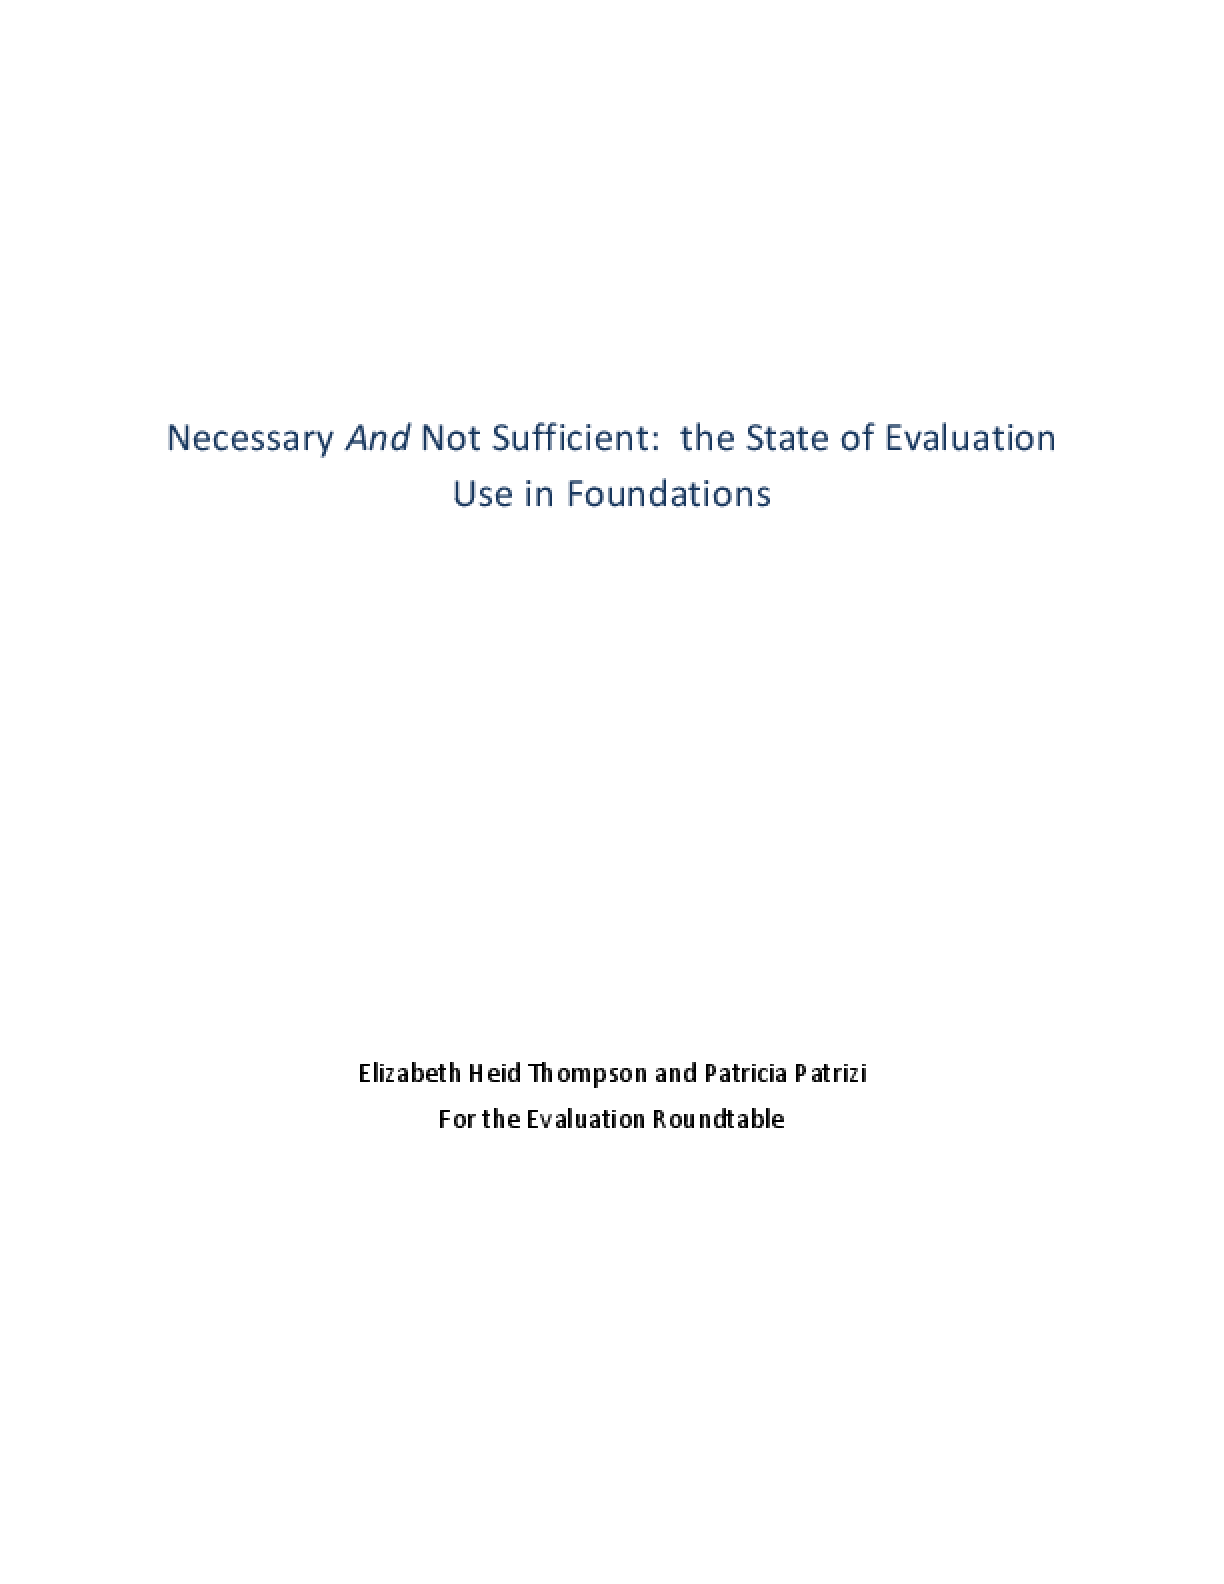 Necessary and Not Sufficient: the State of Evaluation Use in Foundations